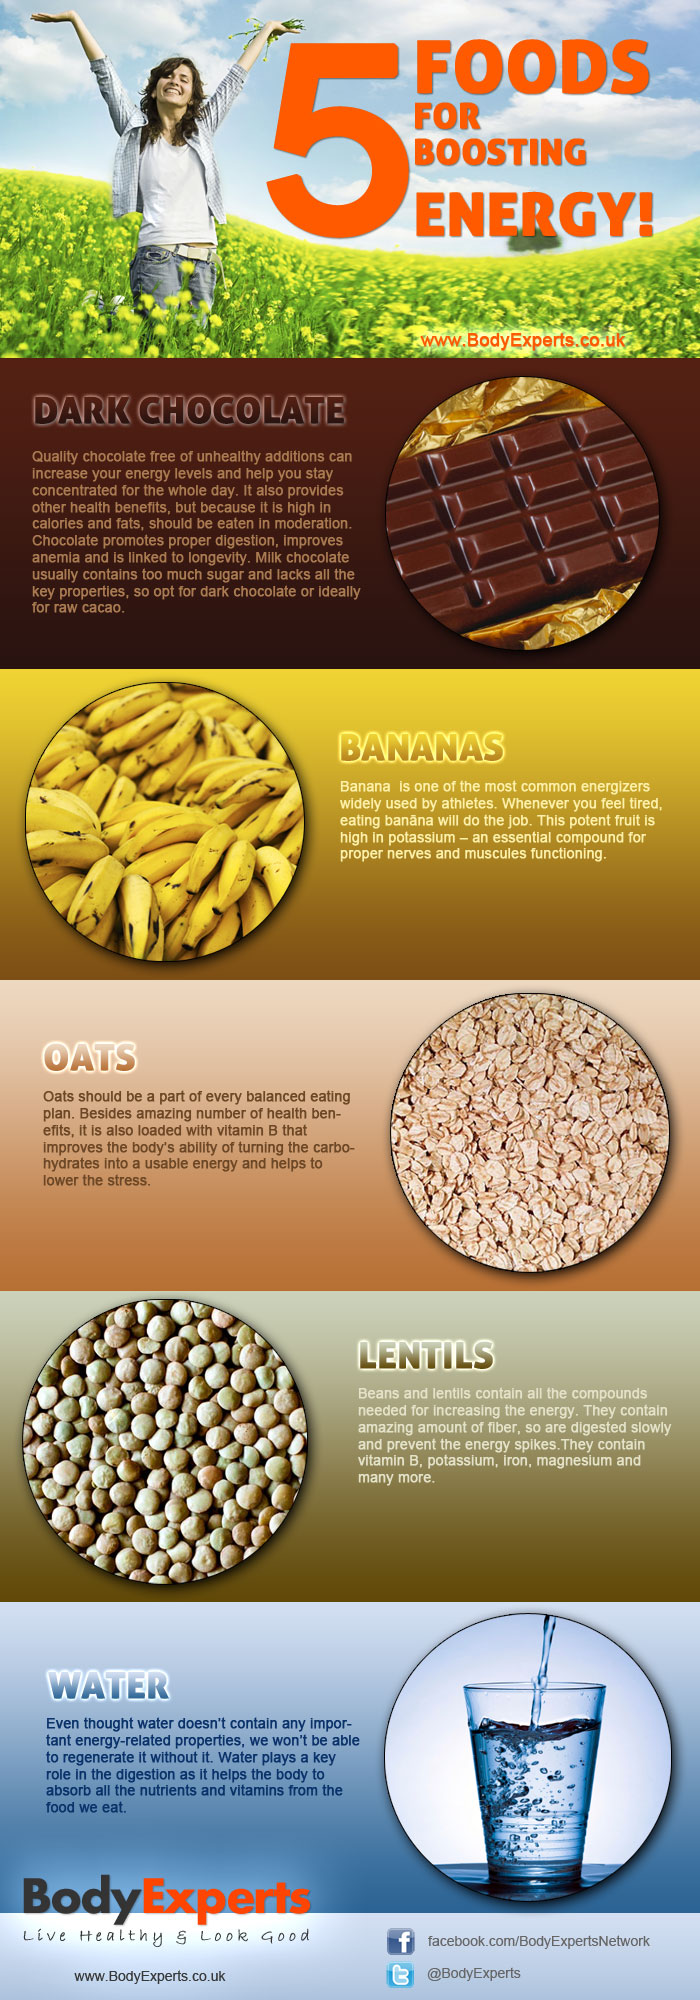 Foods for Boosting Energy